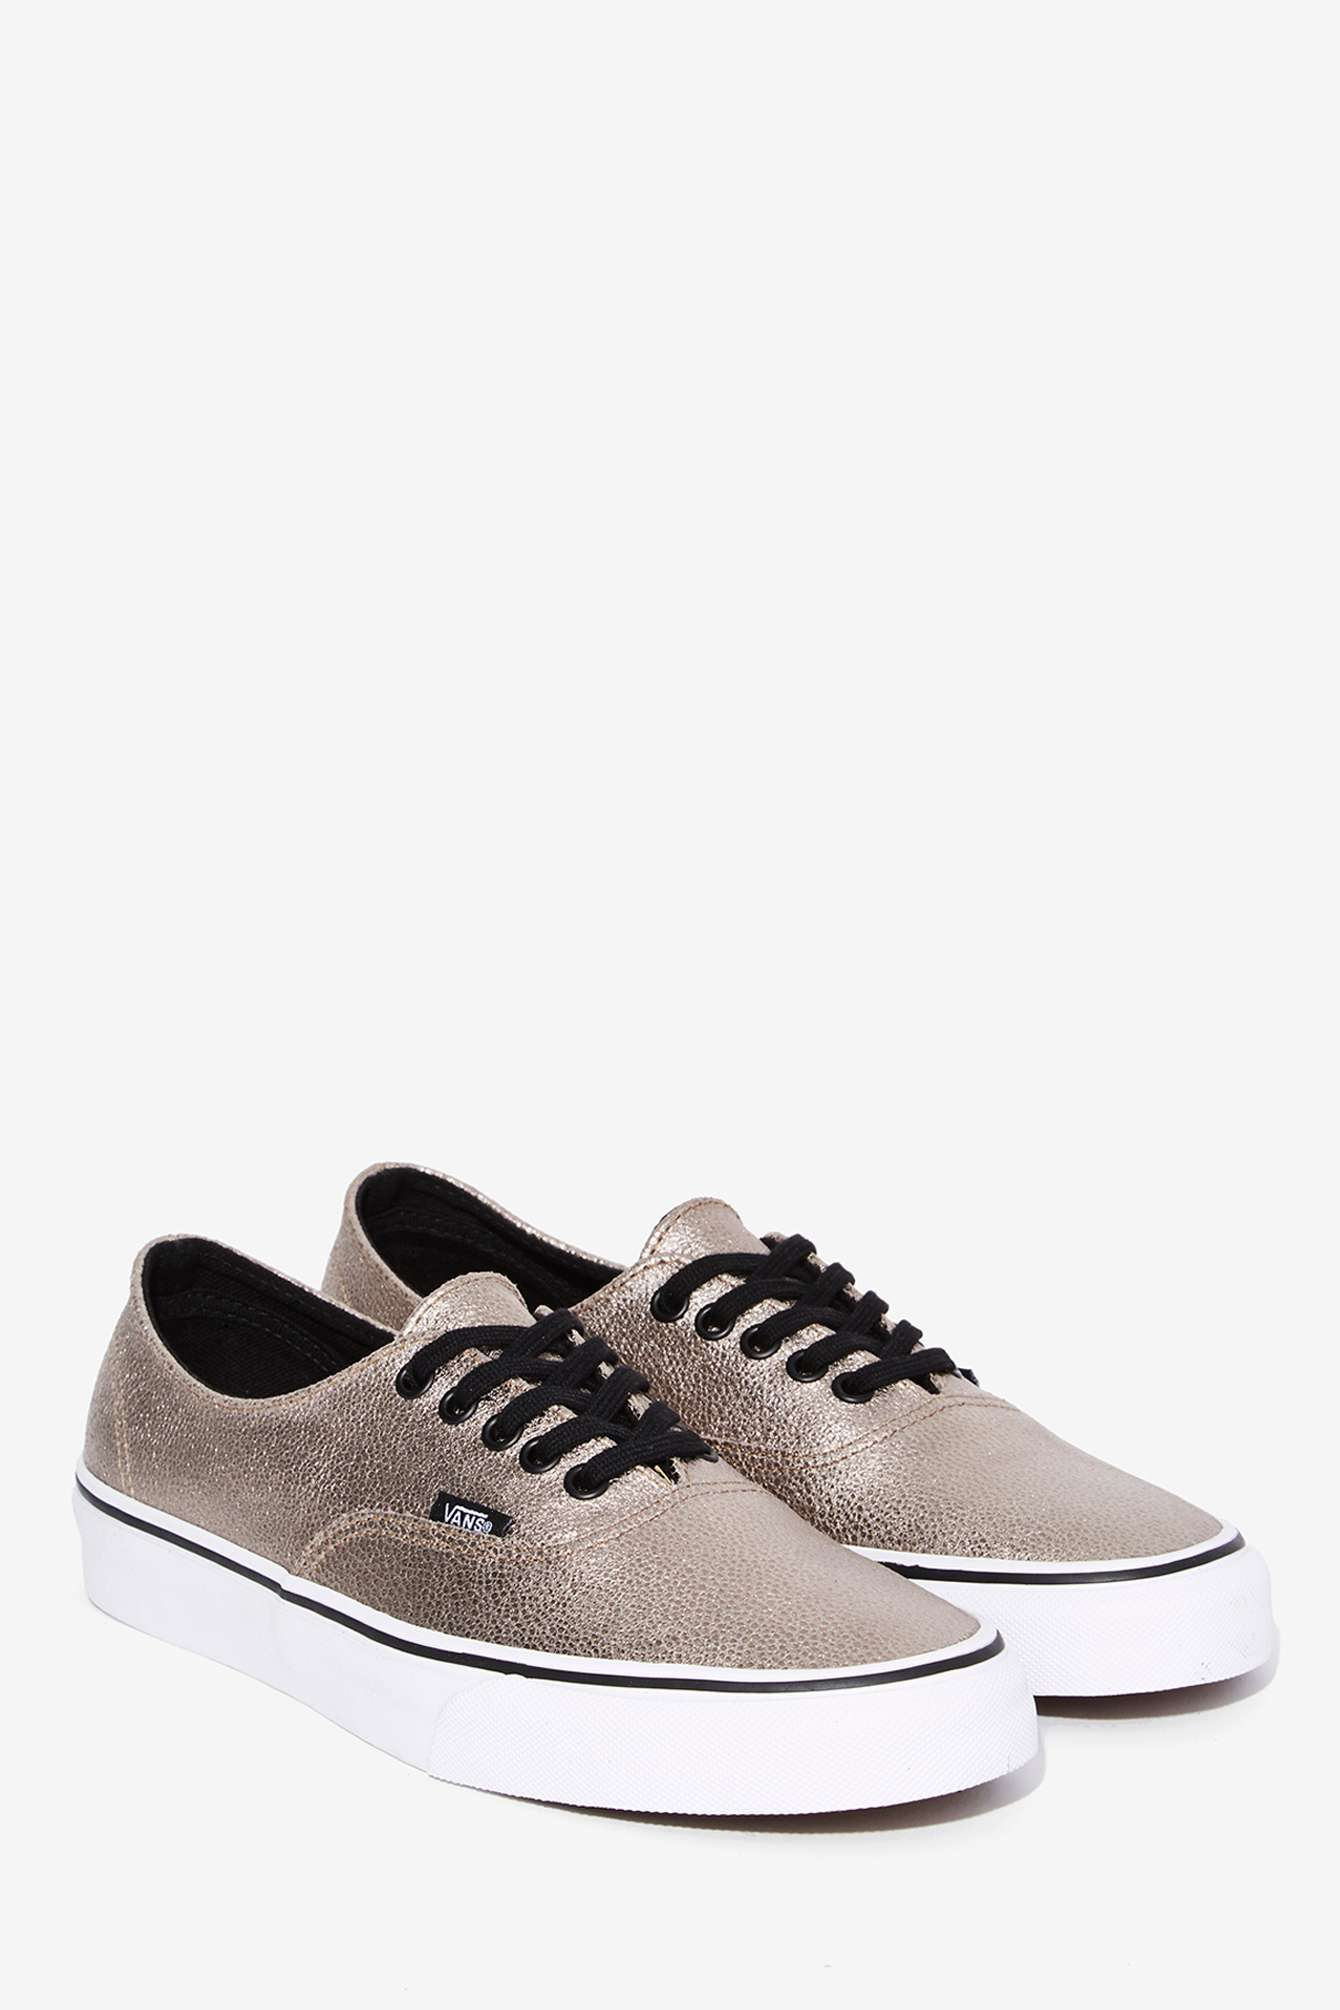 ef4009a38a4114 15 Stylish Sneakers (All Under  100) That You Can Wear With Your ...